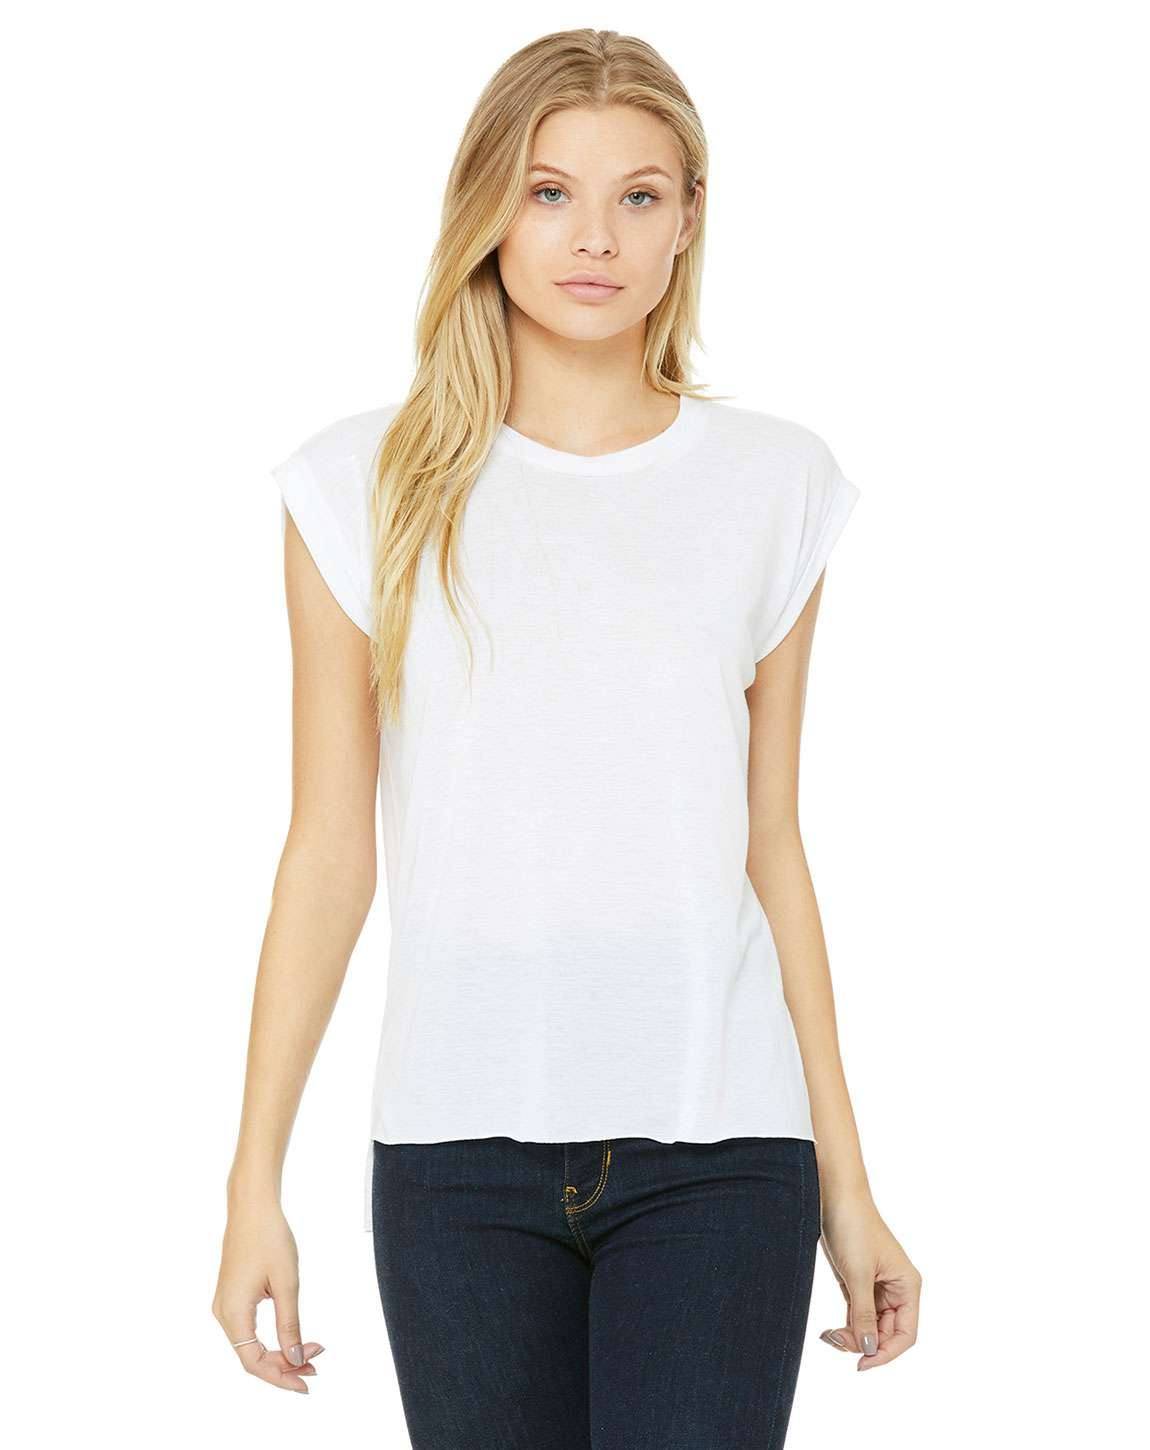 Bella + Canvas 8804 Ladies Flowy Muscle T-Shirt with Rolled Cuff